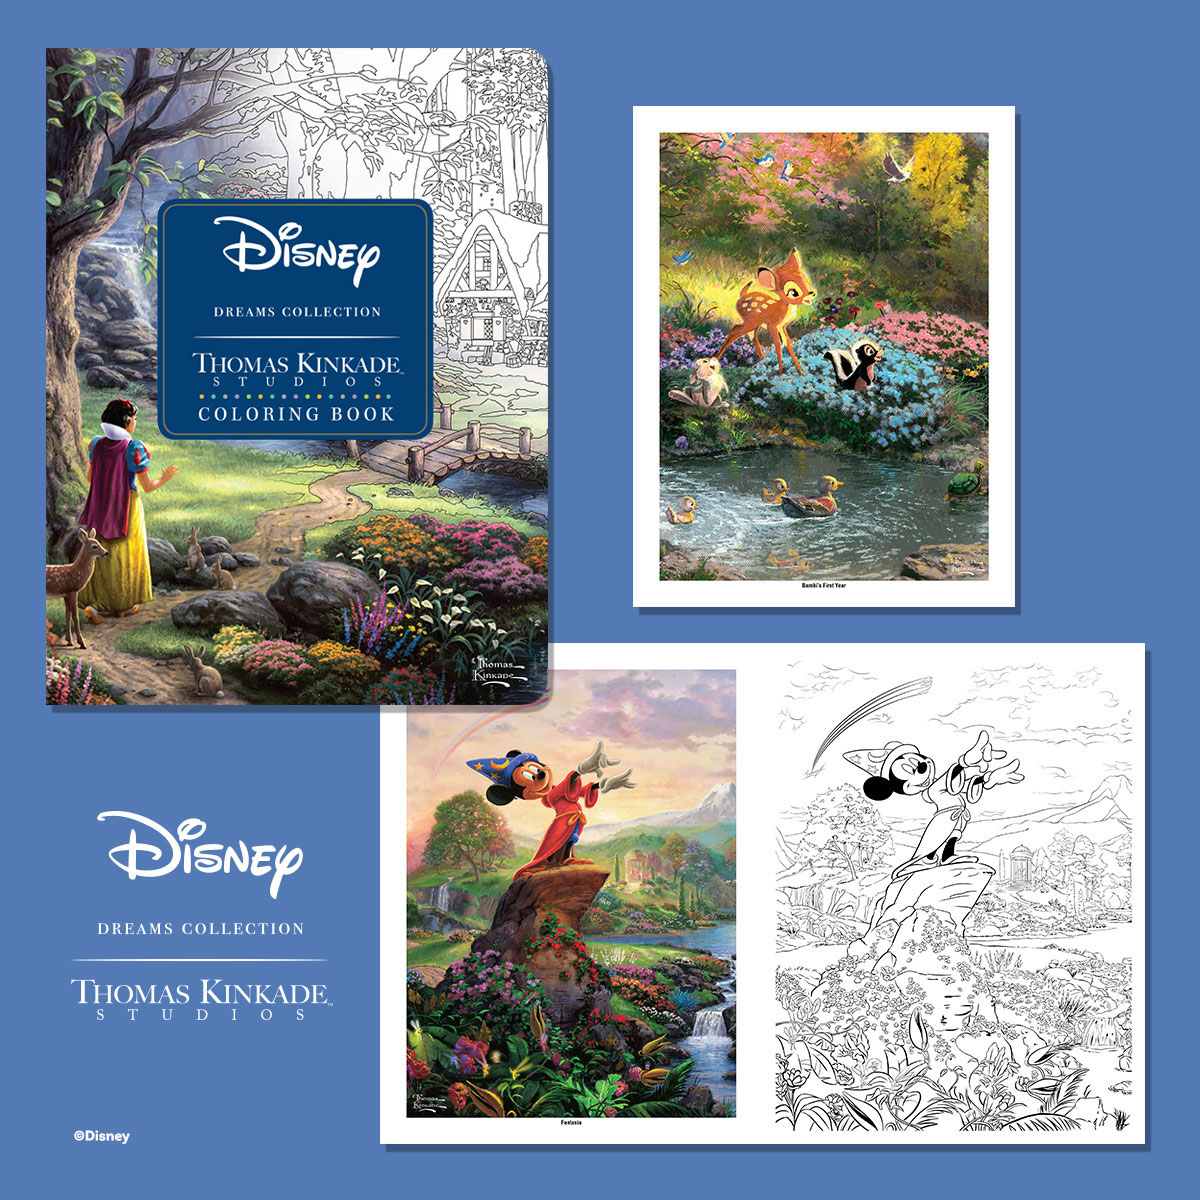 In This Unique Coloring Book Enjoy 63 Pages Of Thomas Kinkade Studios Disney Dreams Collection Paintings Celebrating The Timeless Moments Classic